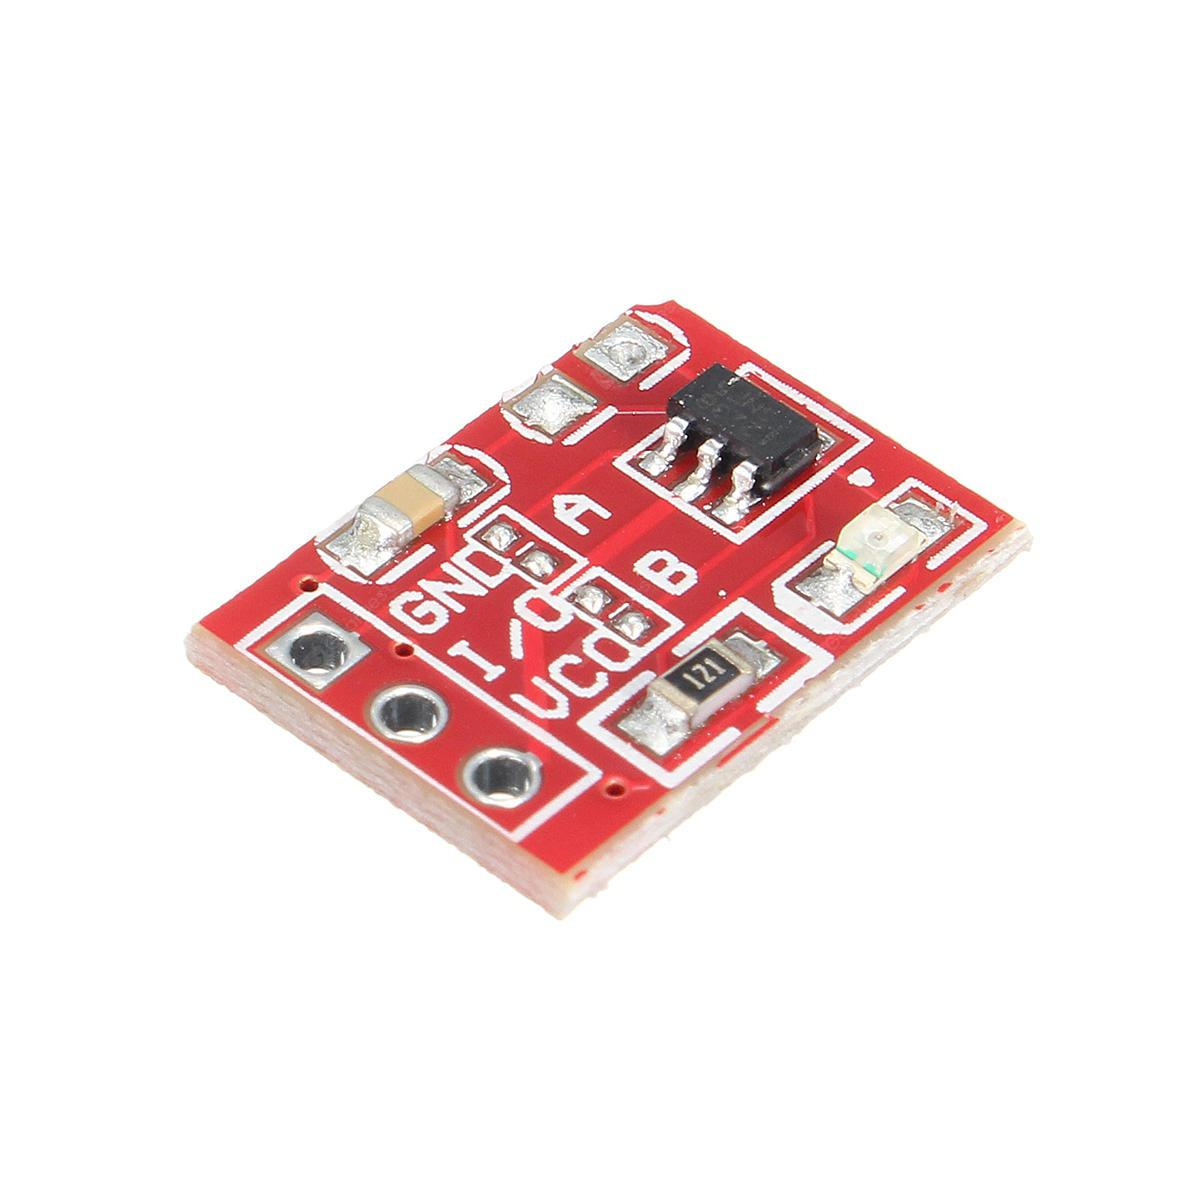 3pcs 2.5-5.5V TTP223 Capacitive Touch Switch Button Self Lock Module for Arduino - products that work with official Arduino boards